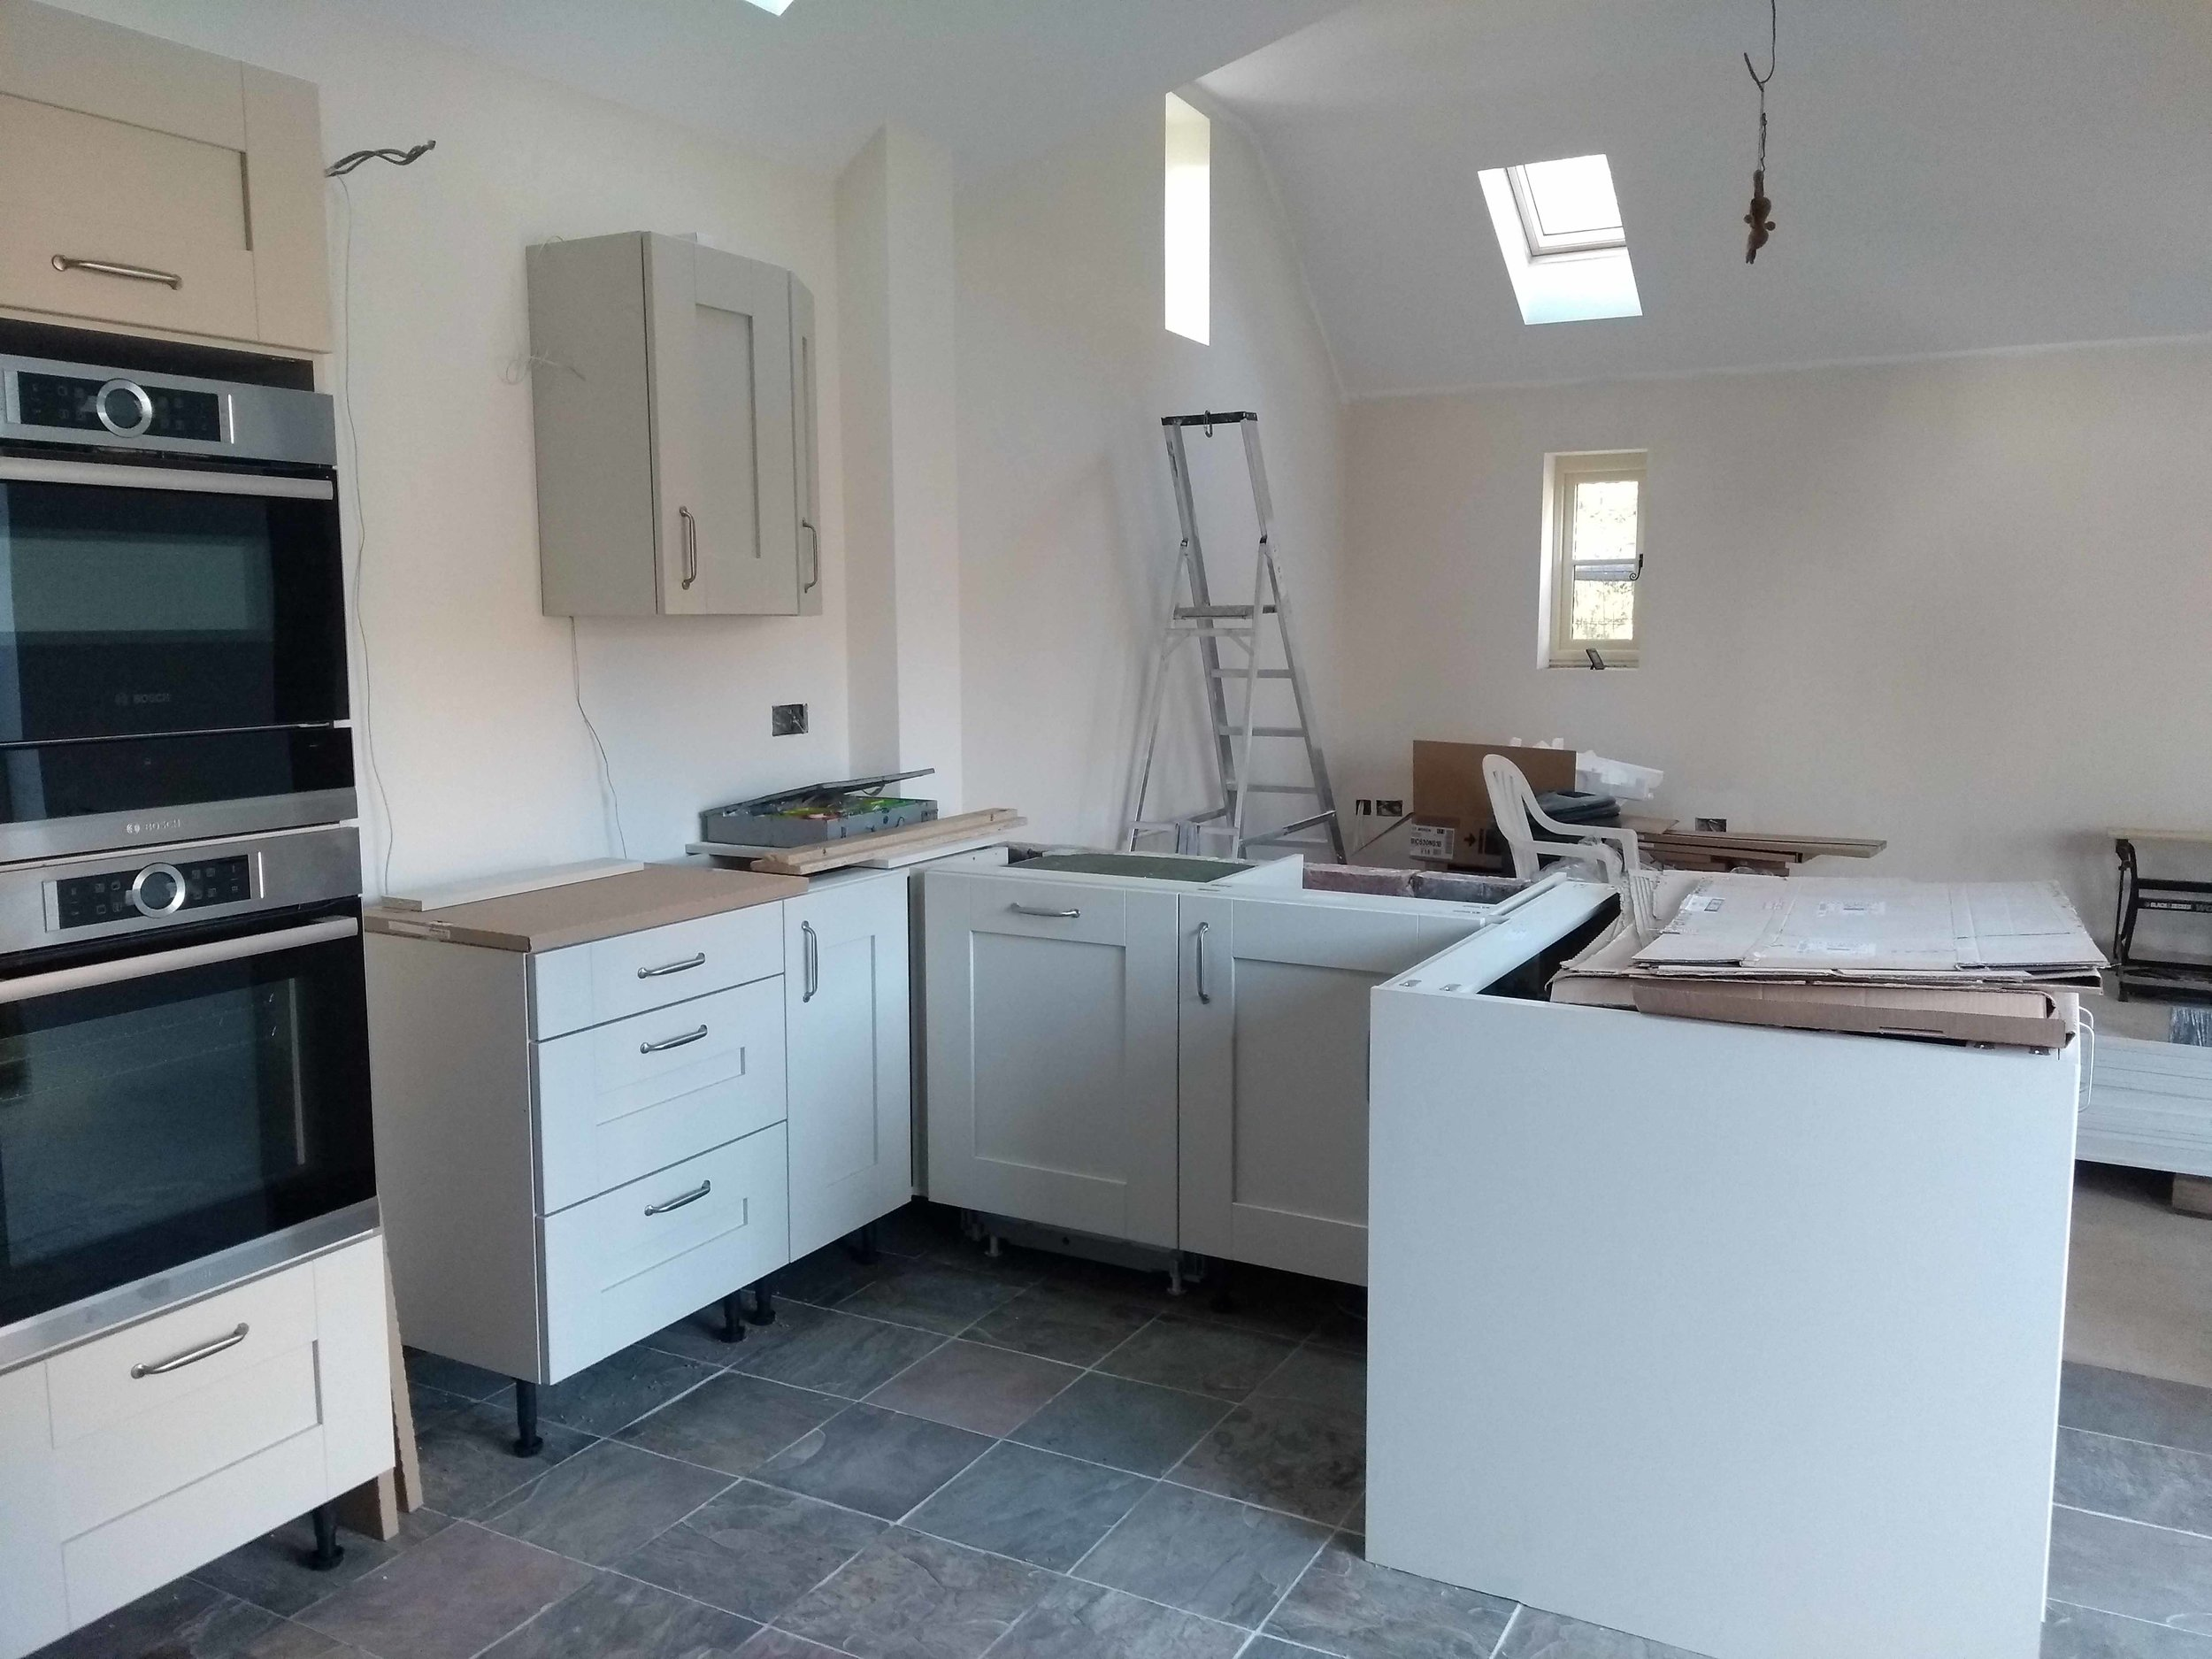 Kitchen from the utility room